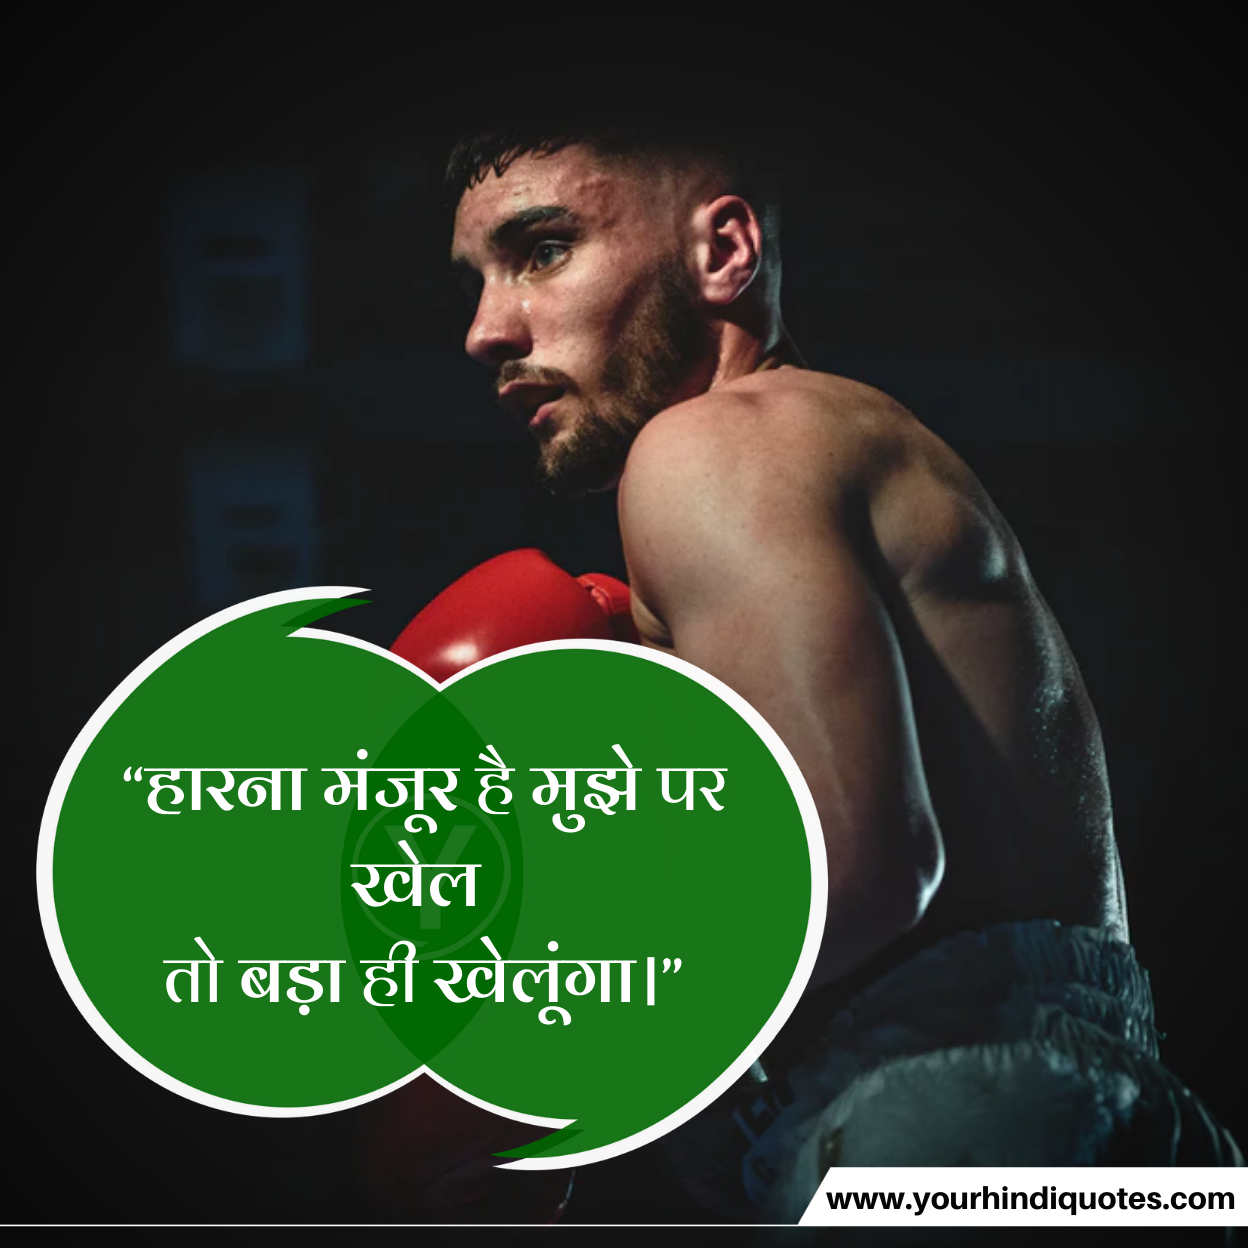 Best Hindi Life Quotes Images